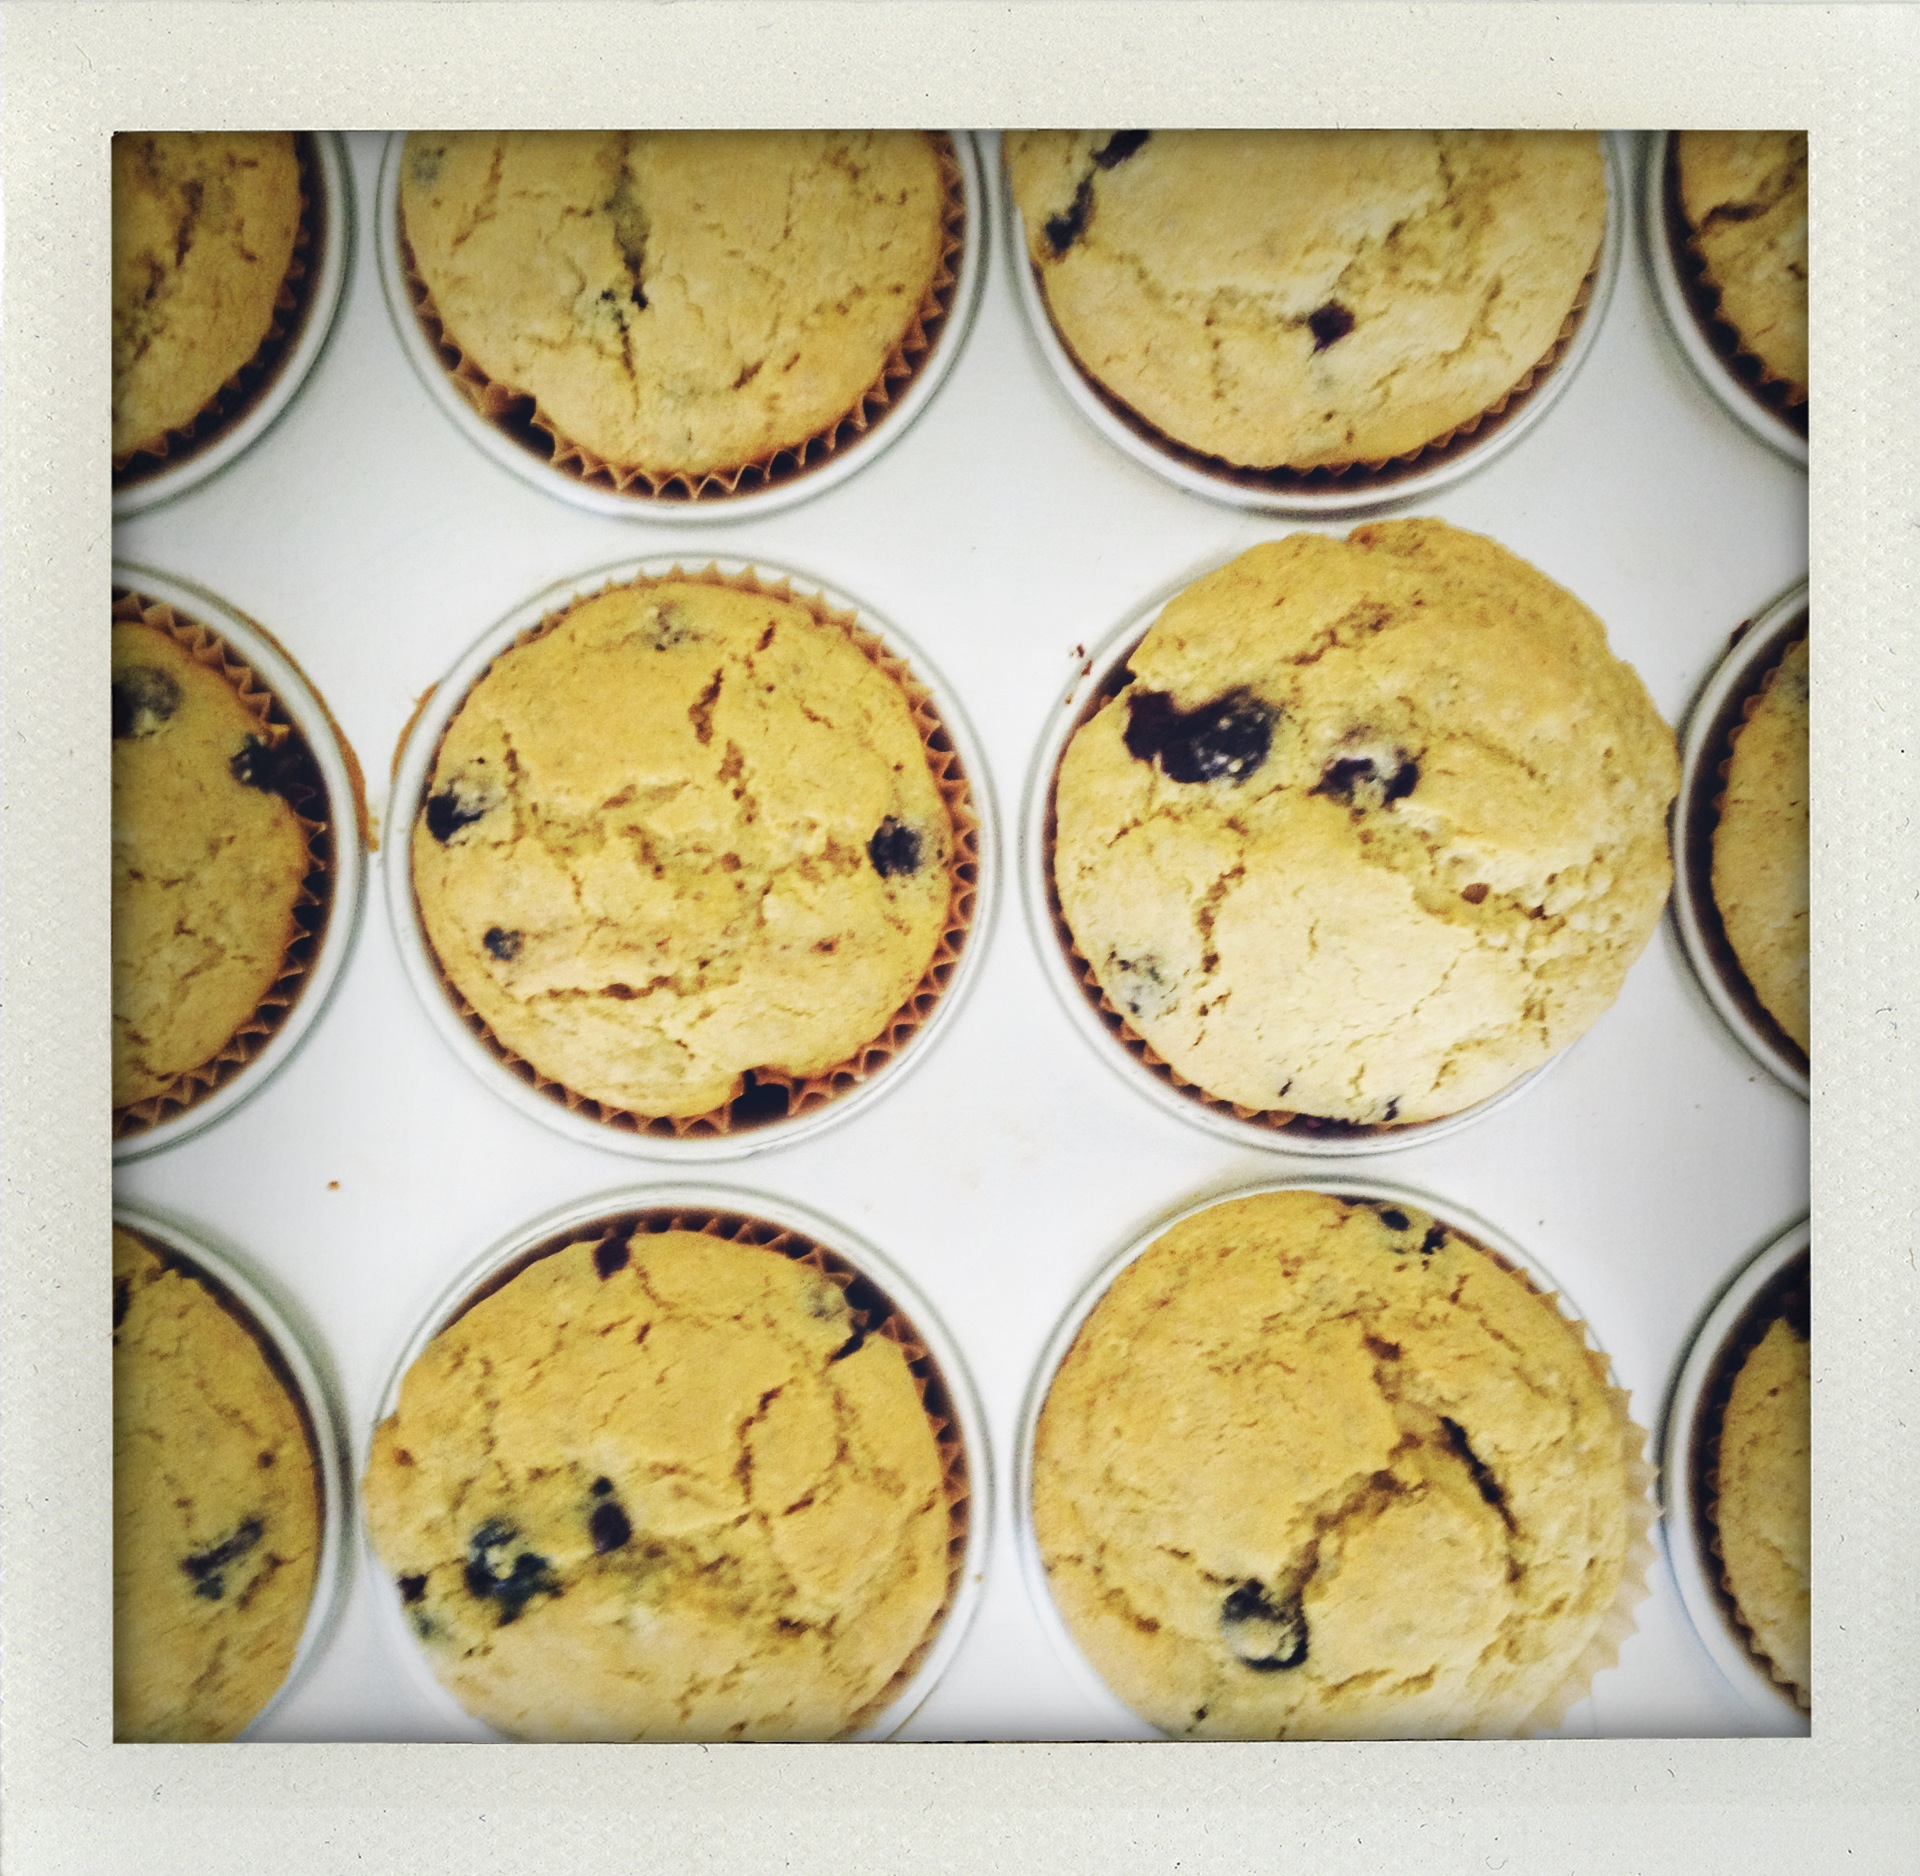 Chia & Blueberry Muffins